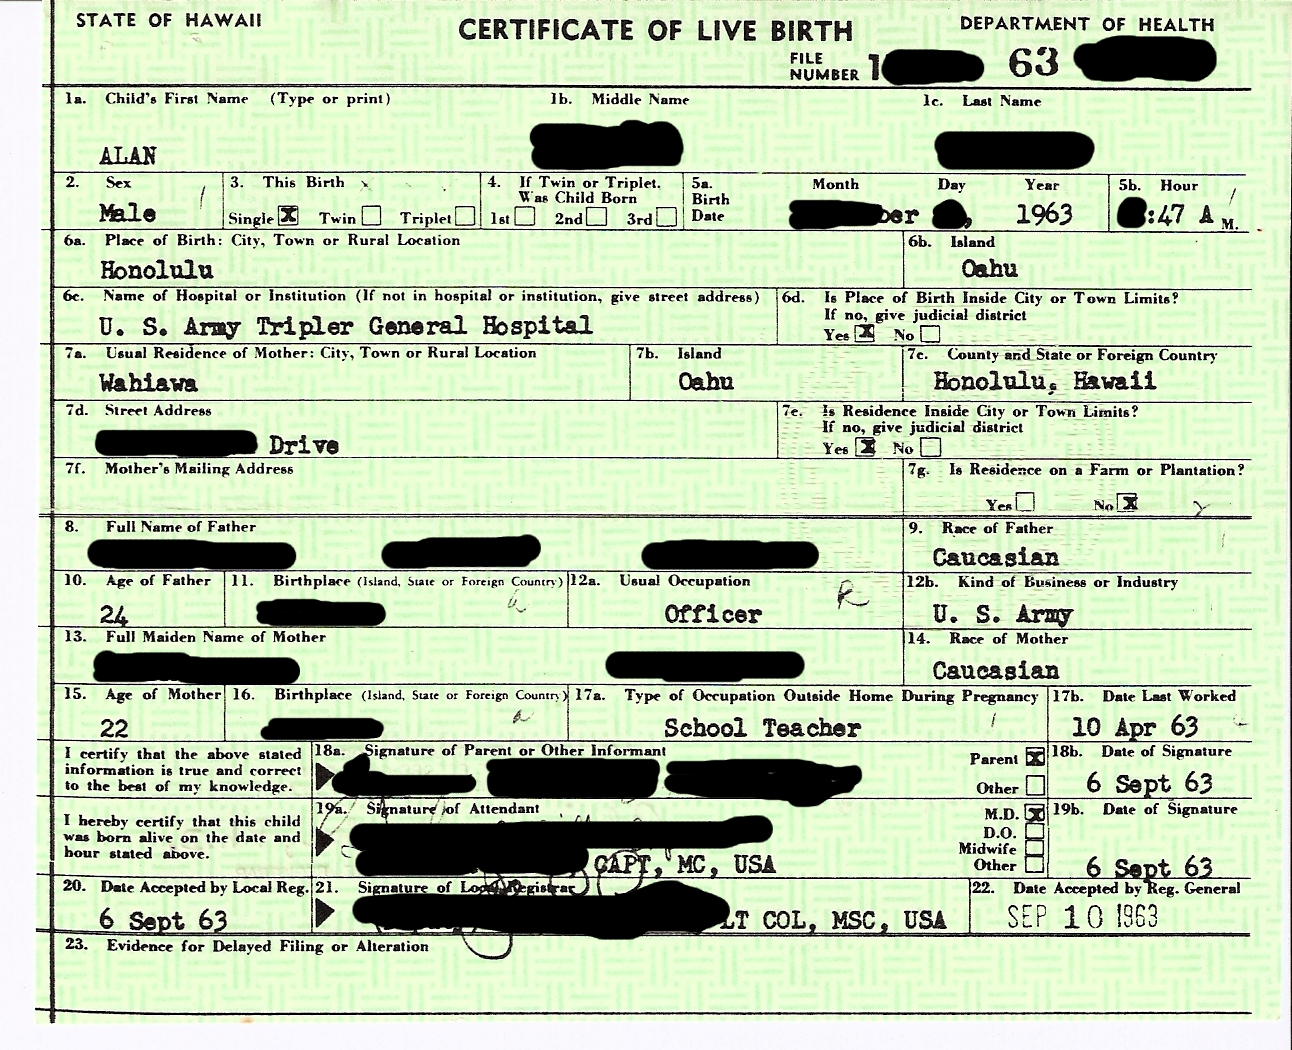 https://i0.wp.com/snarkybytes.com/wp-content/uploads/2008/06/hawaii-birth-certificate-1963.jpg